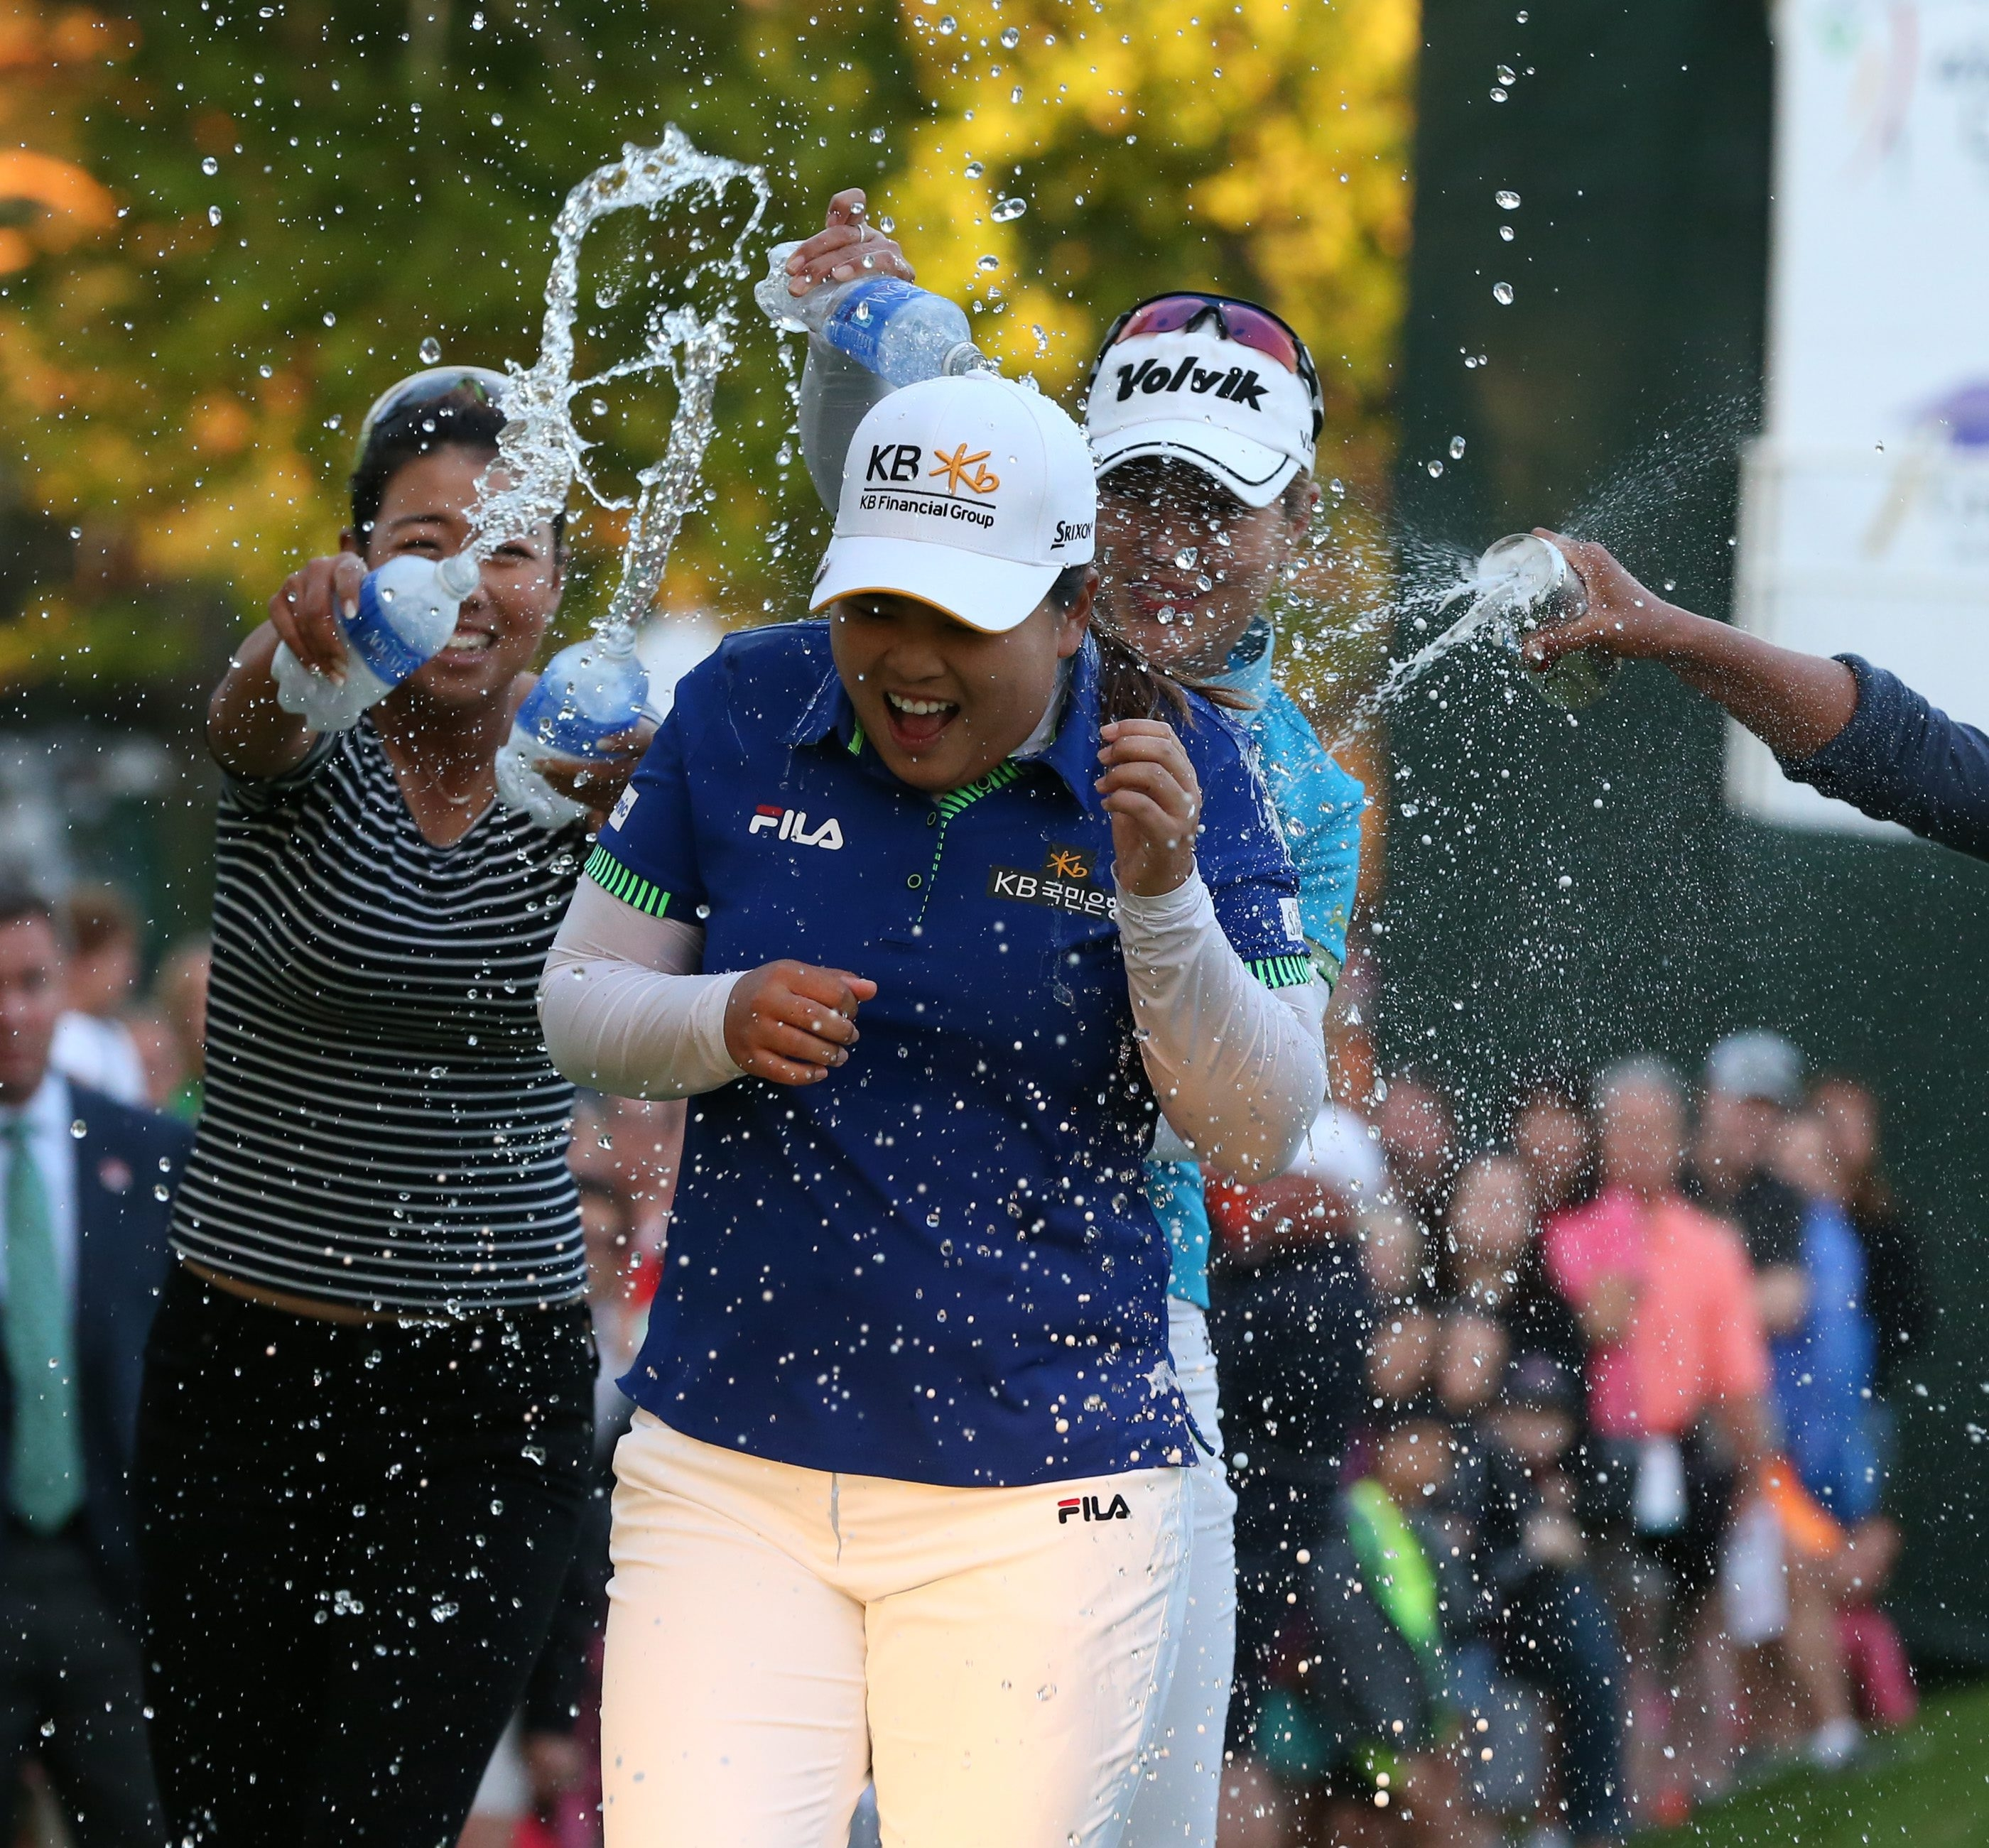 It's party time at Monroe Golf Club as players give Inbee Park a celebratory shower after winning the Wegmans LPGA Championship.